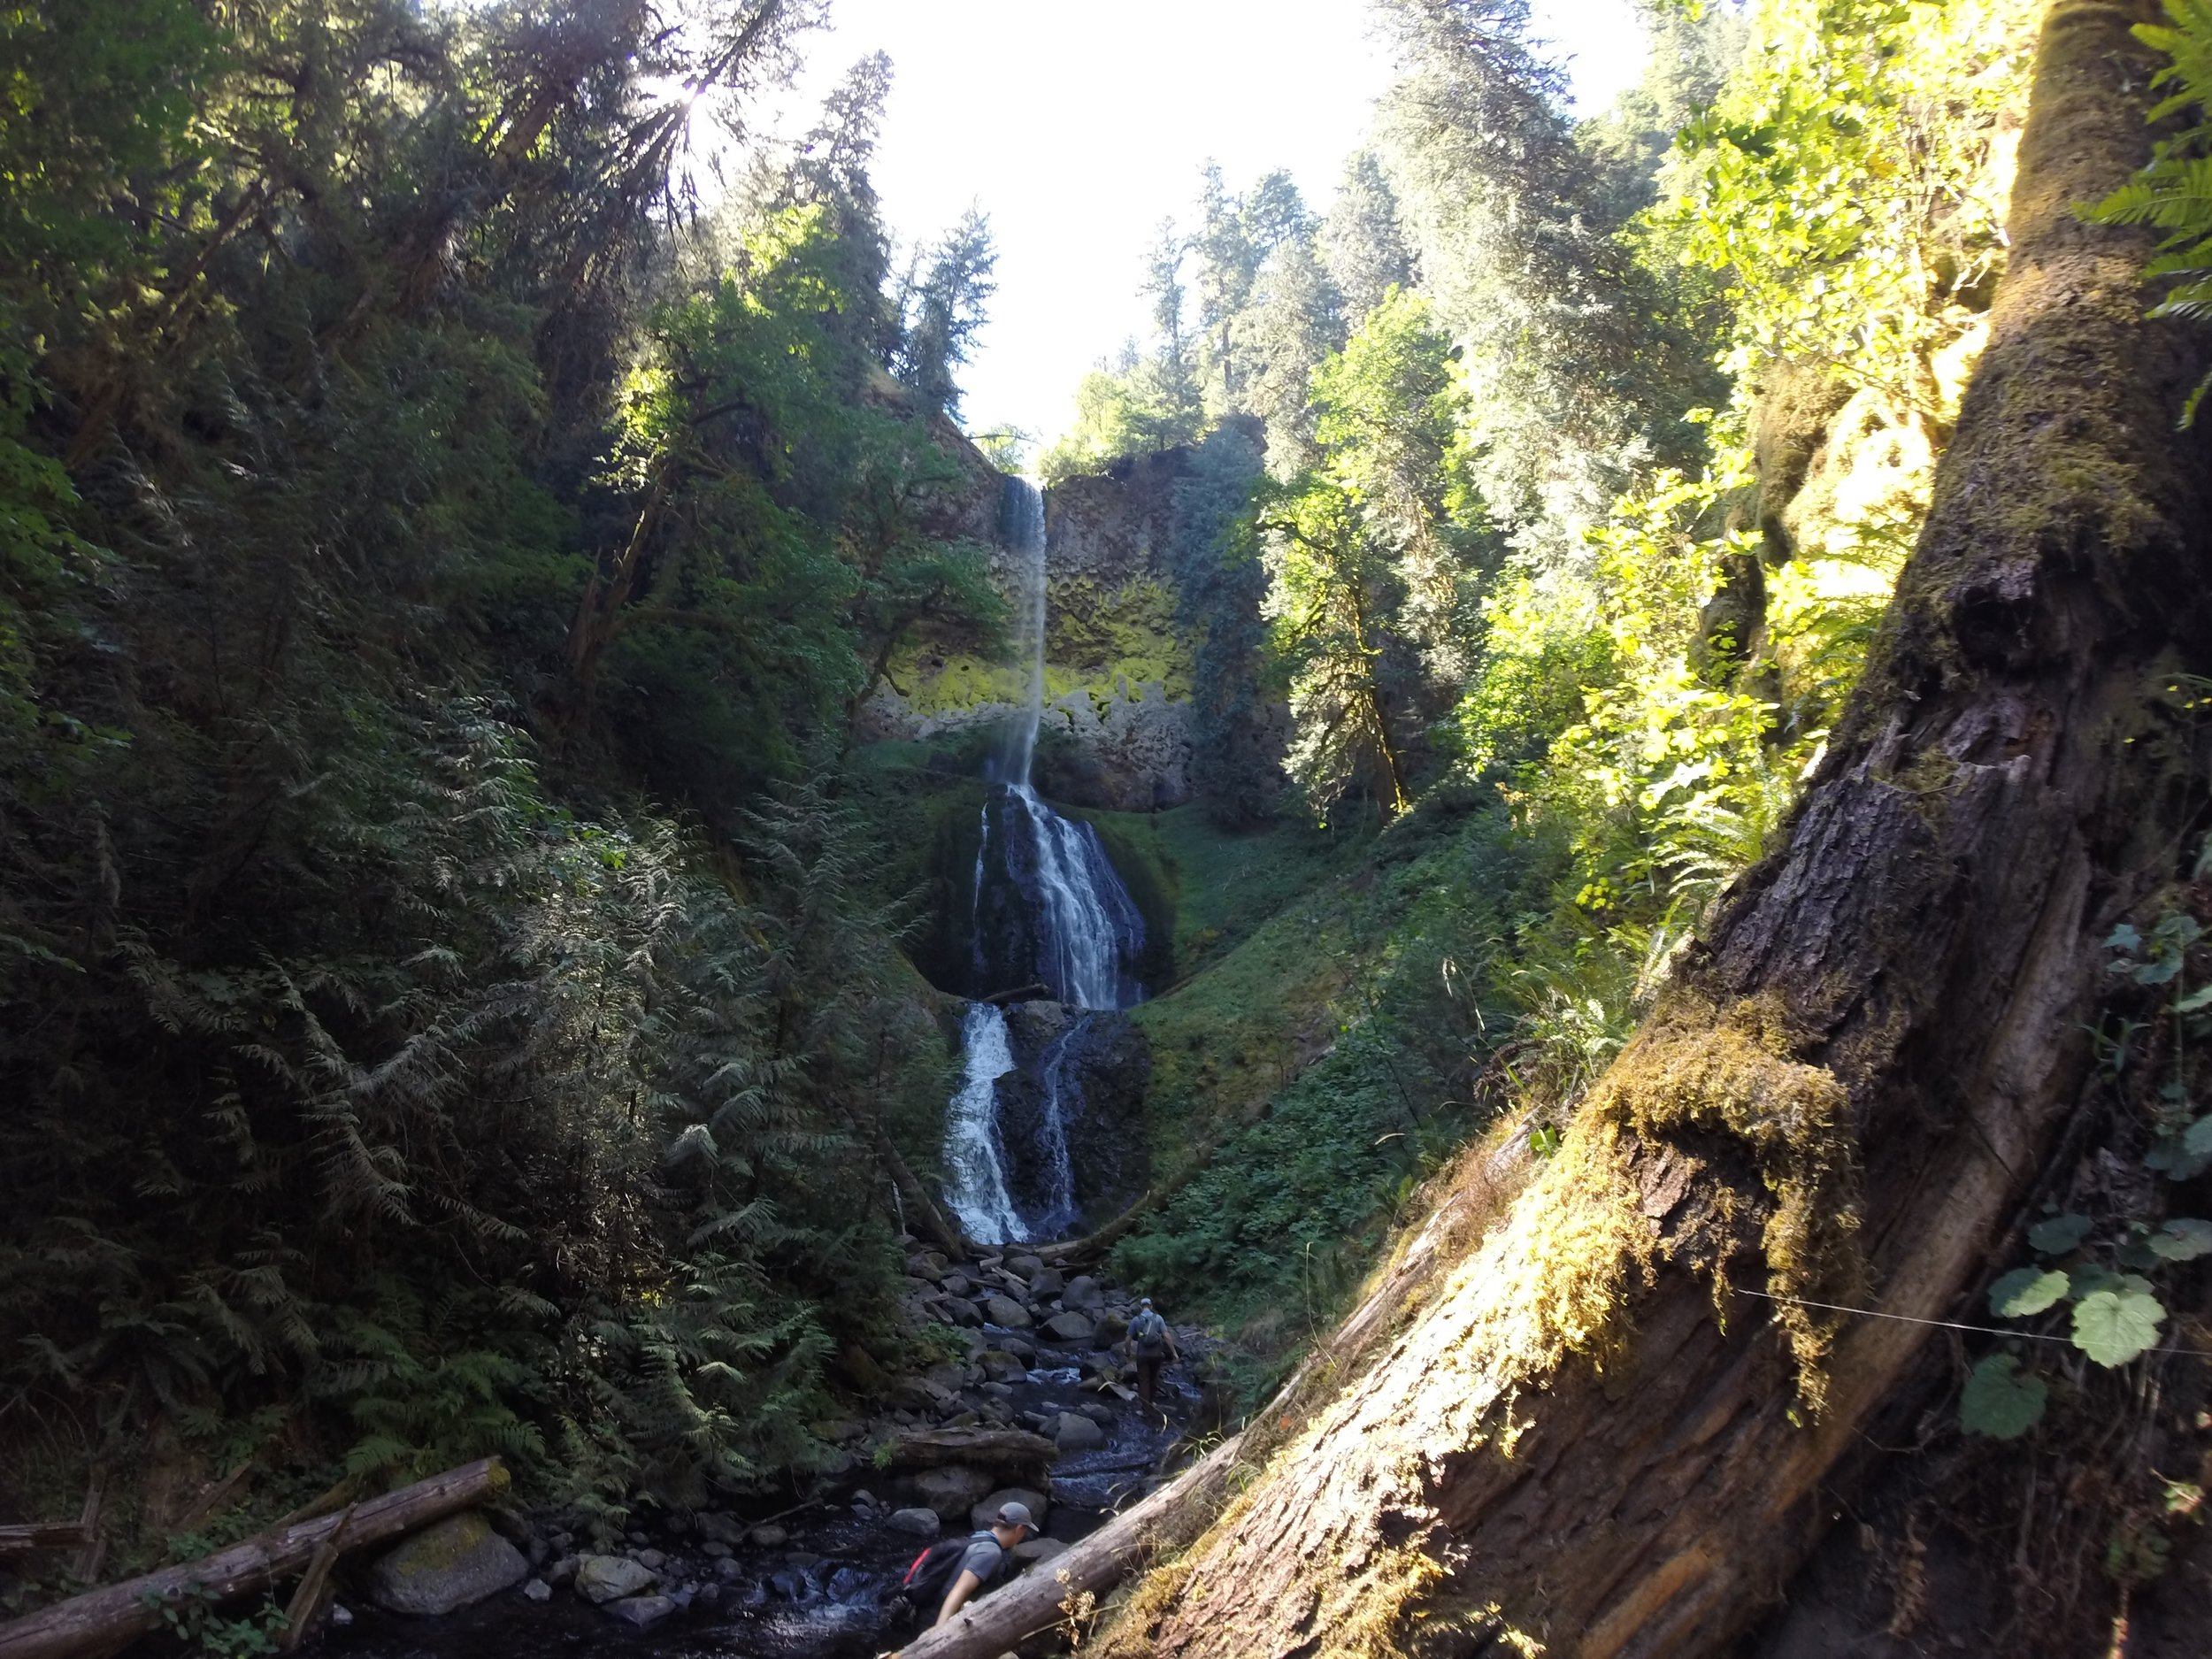 Pup Creek Falls is spectacular and we didn't see another person all day.